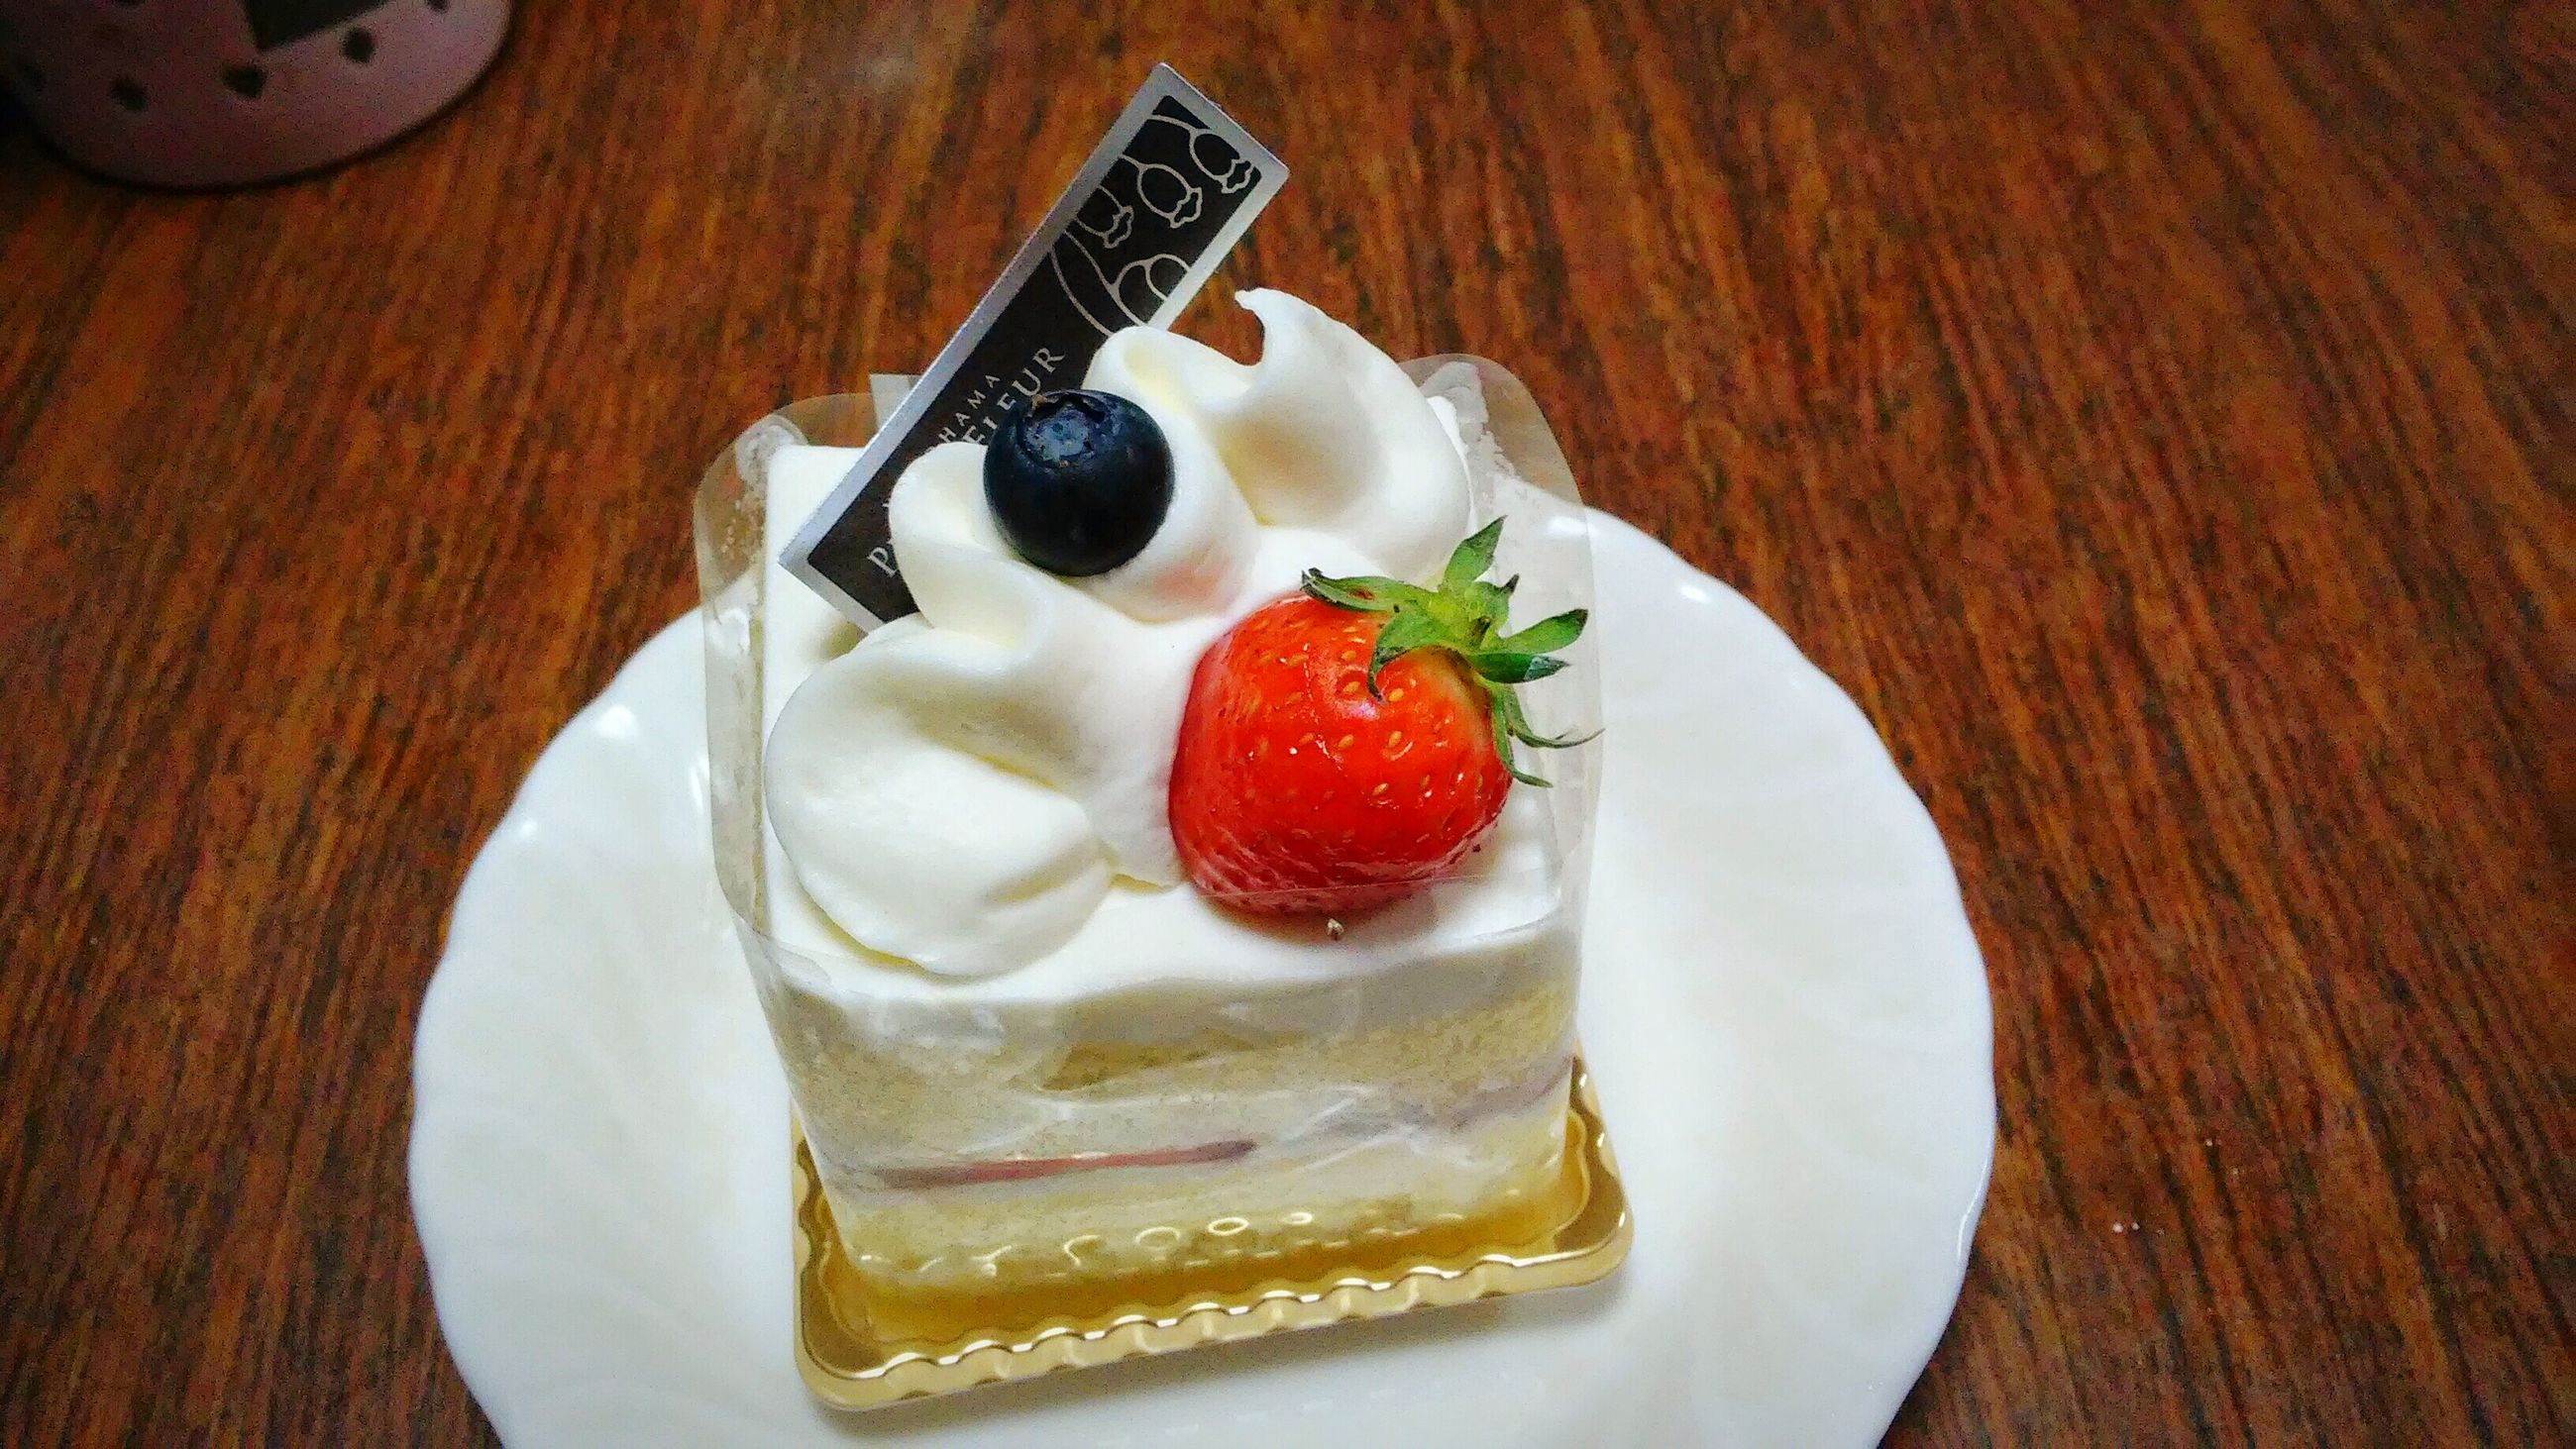 food and drink, food, indoors, freshness, still life, sweet food, ready-to-eat, table, indulgence, plate, dessert, high angle view, unhealthy eating, temptation, slice, cake, directly above, serving size, close-up